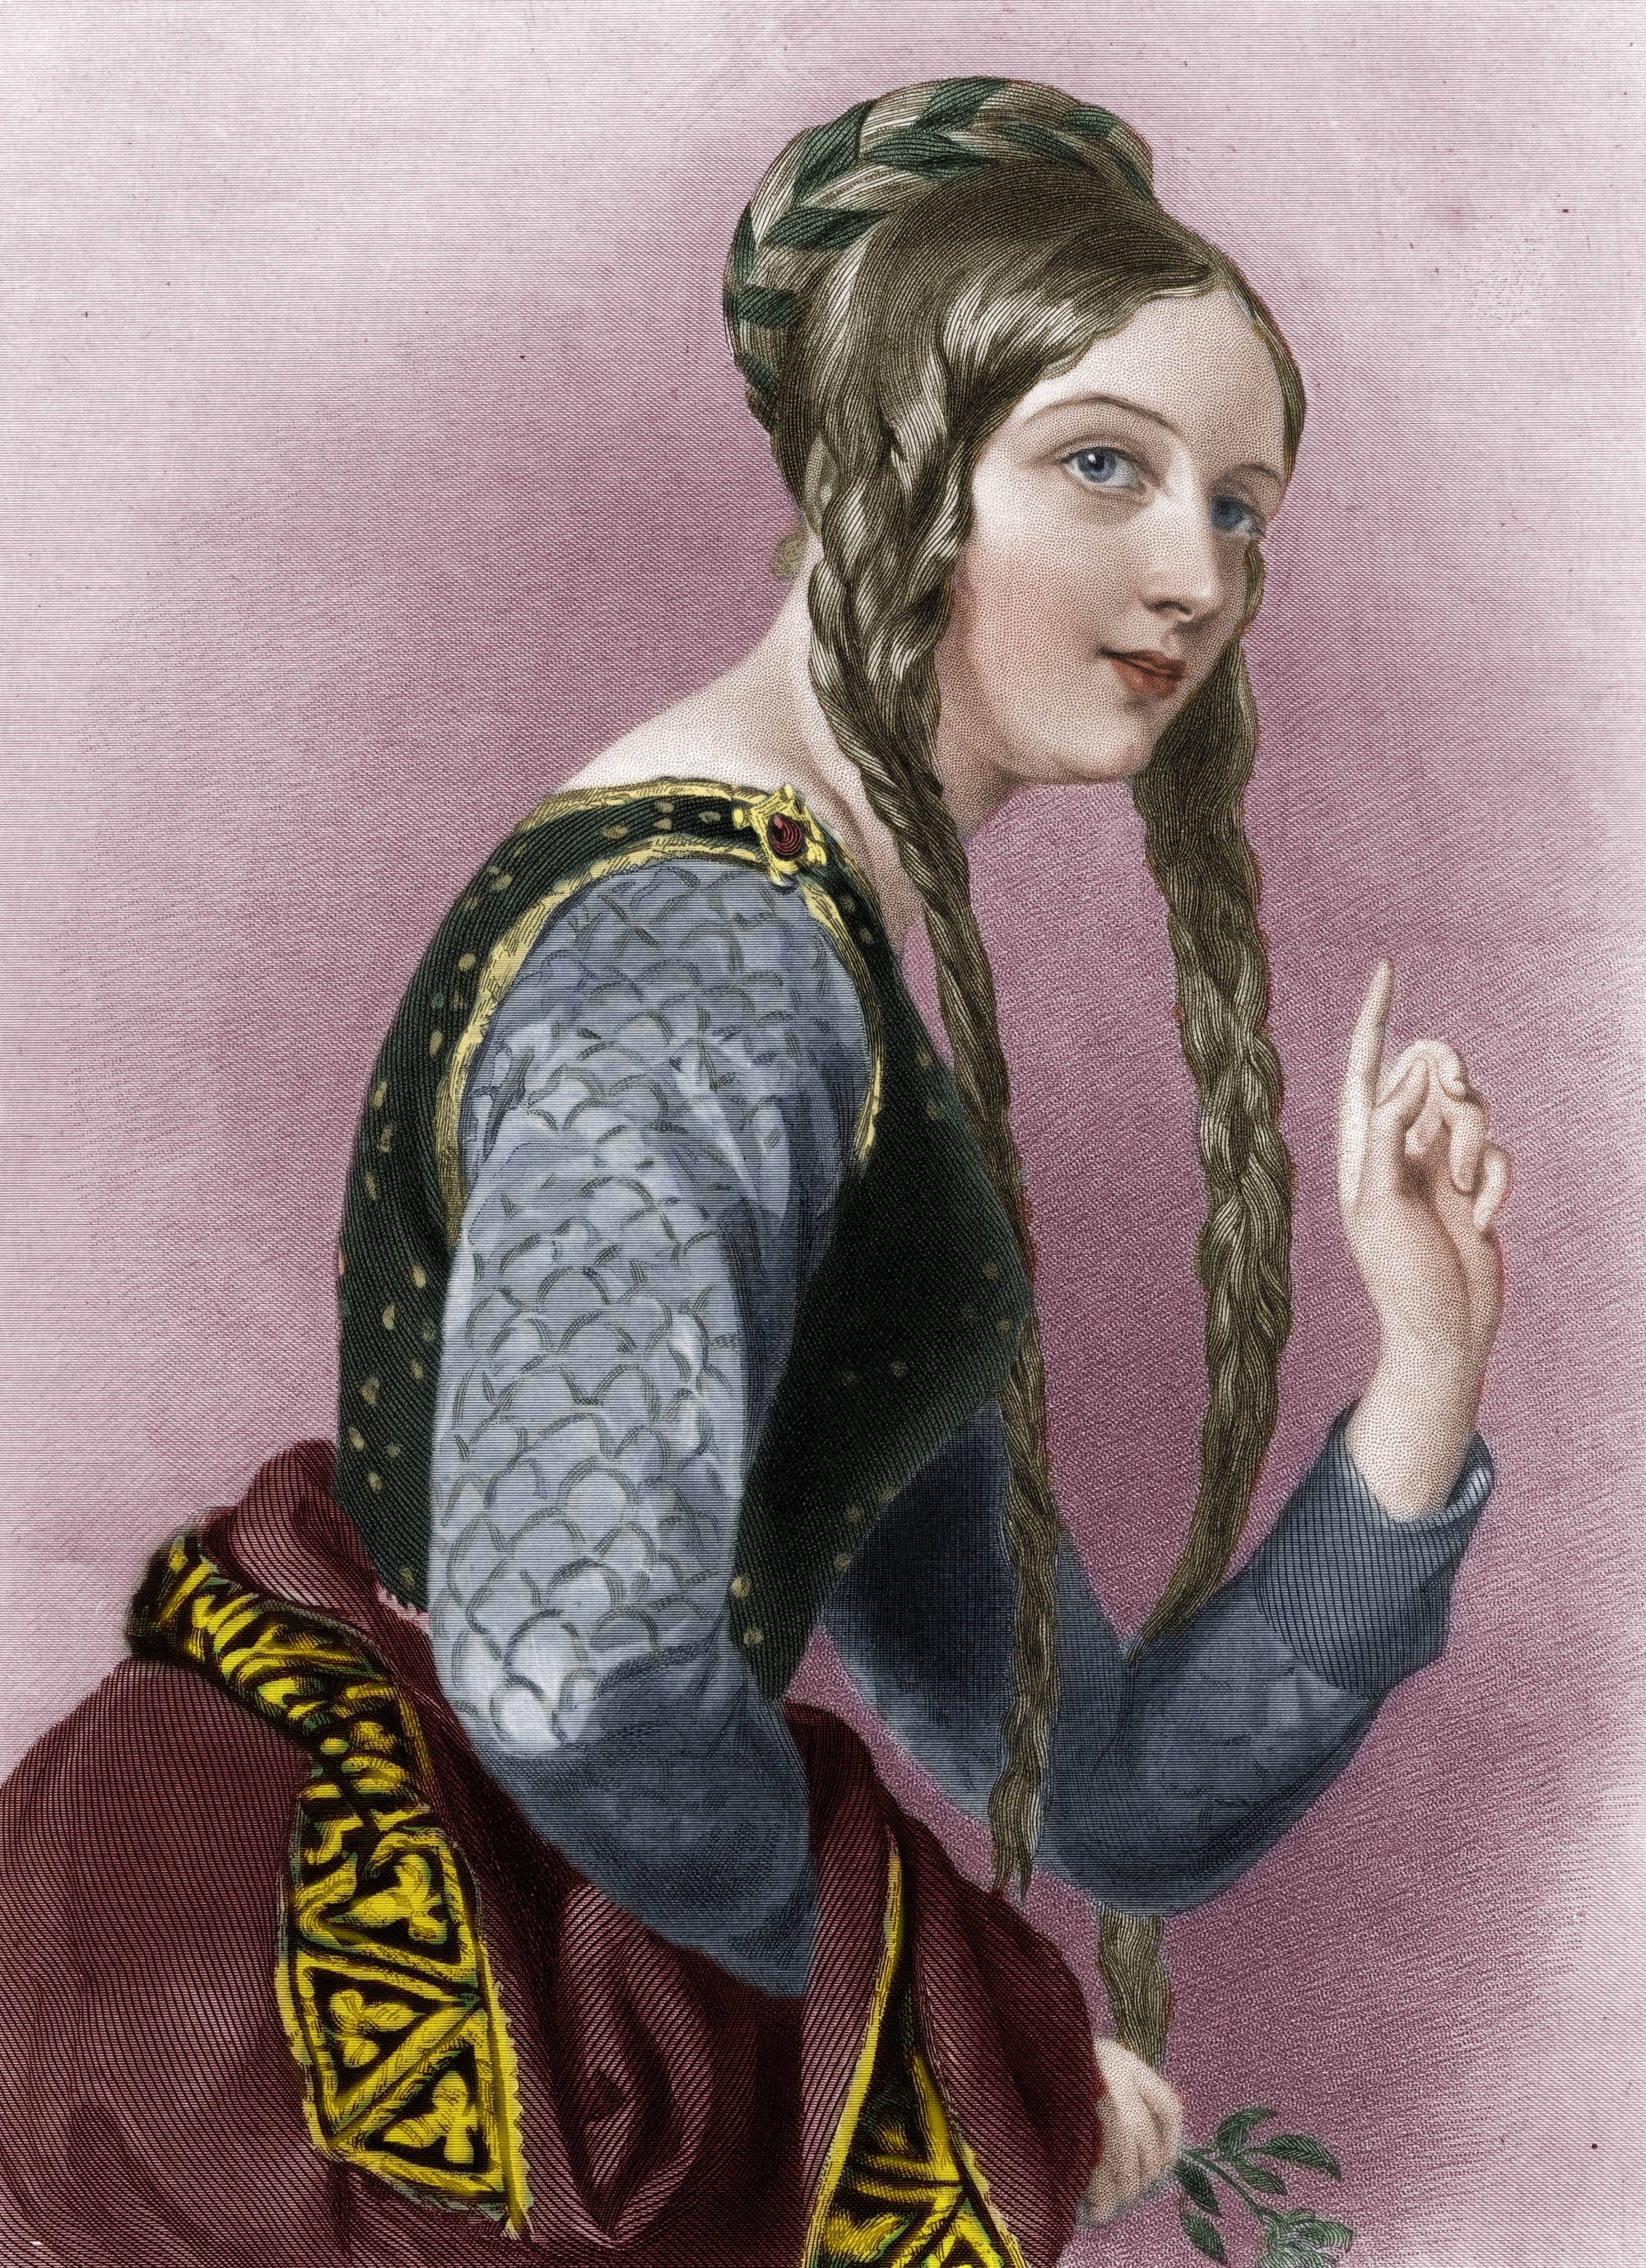 The most modern woman of Medieval Europe was a queen by birth, a warrior and murderer by legend